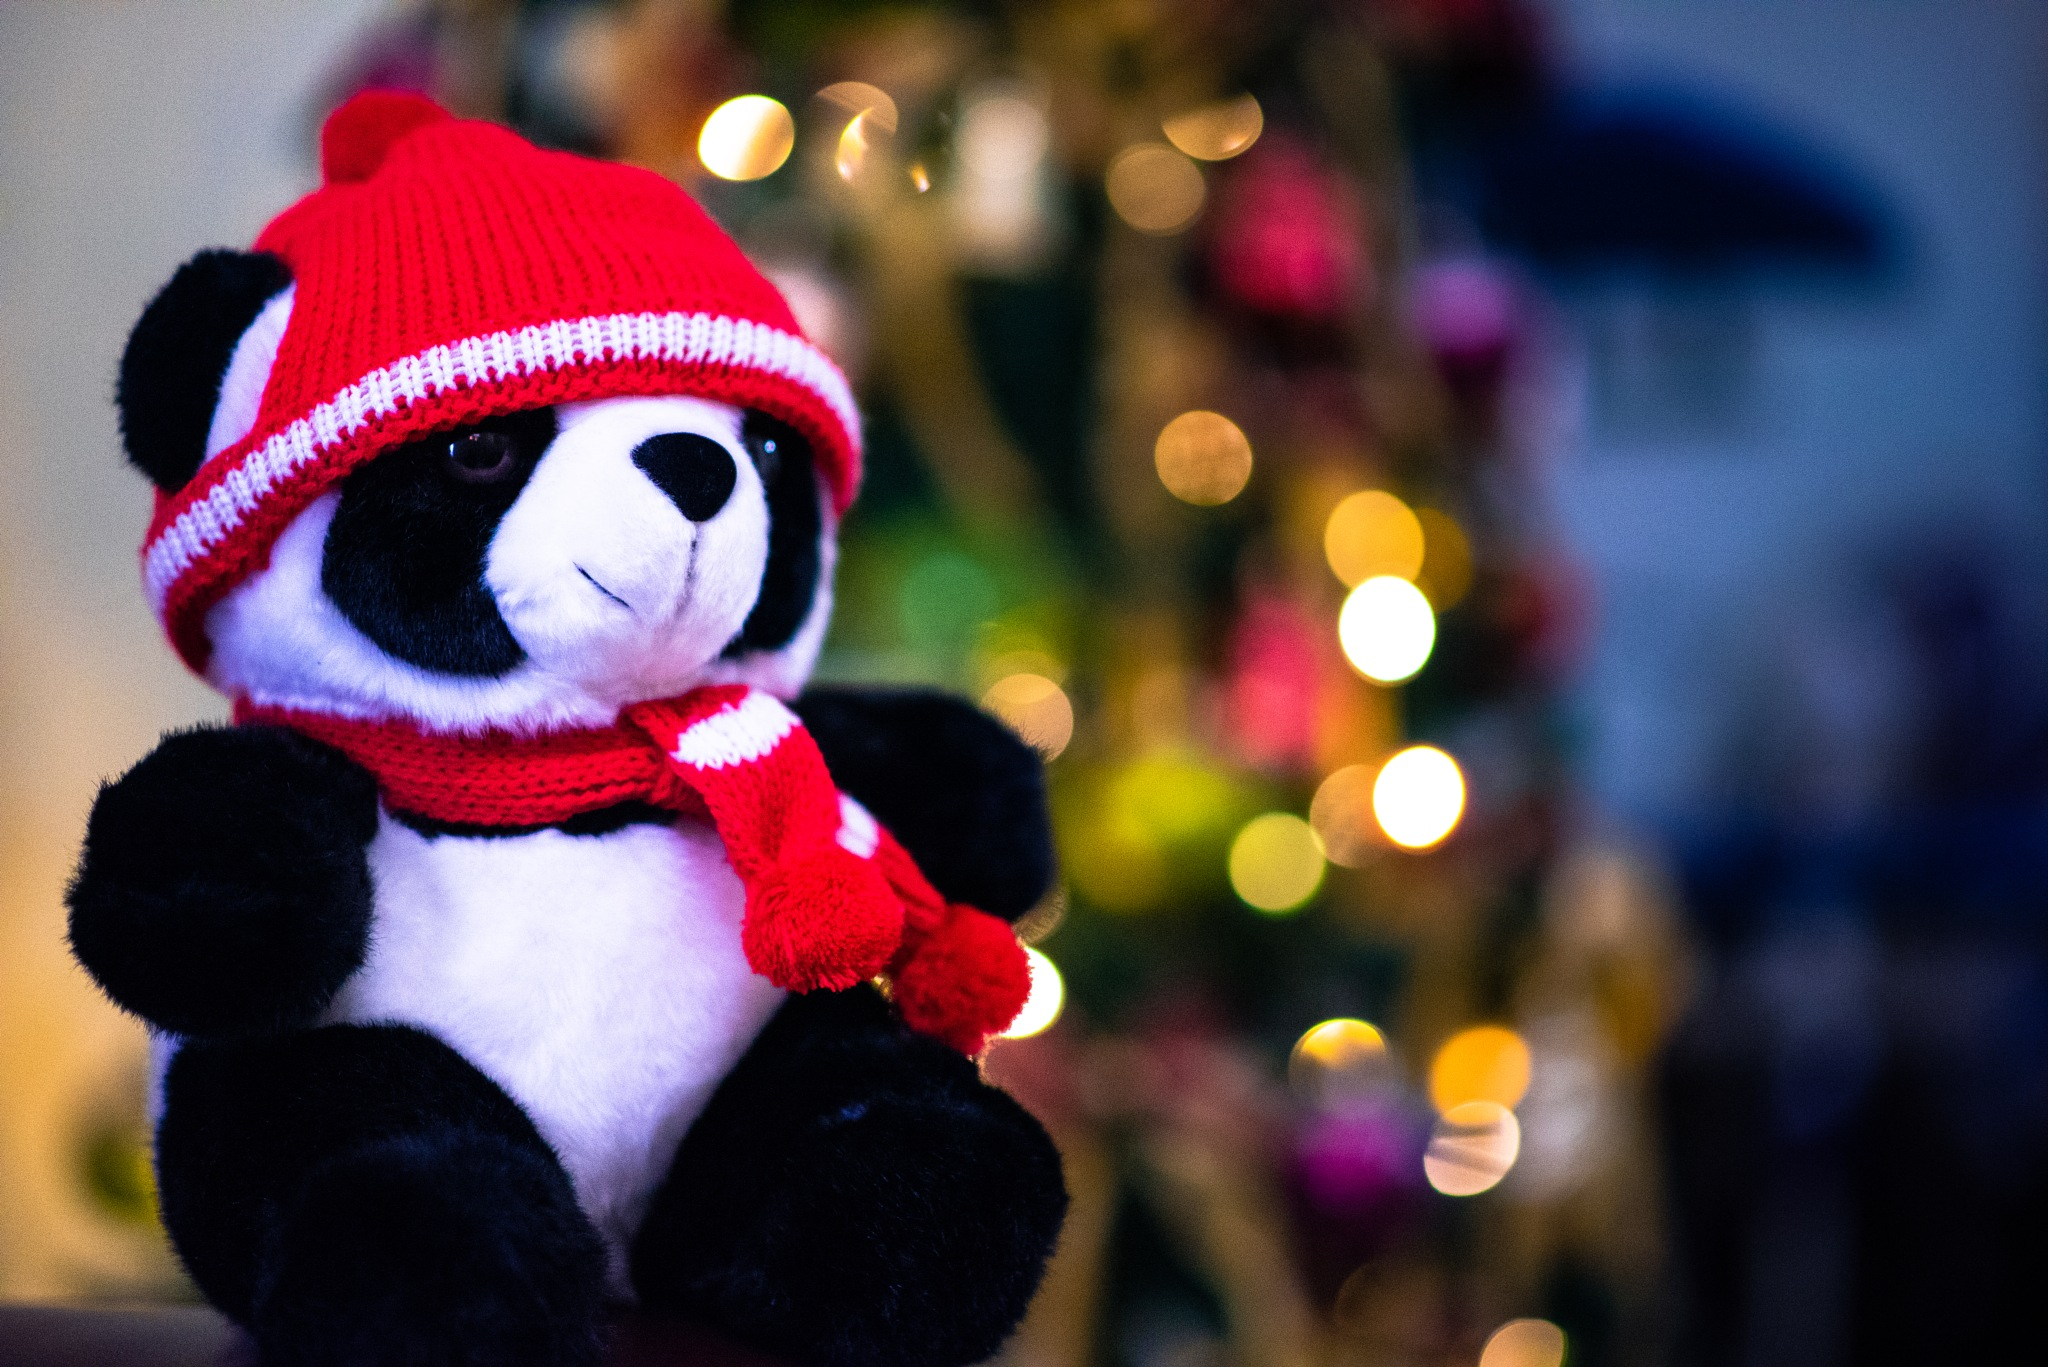 Panda in christmass by Andreas Malvin Wetik